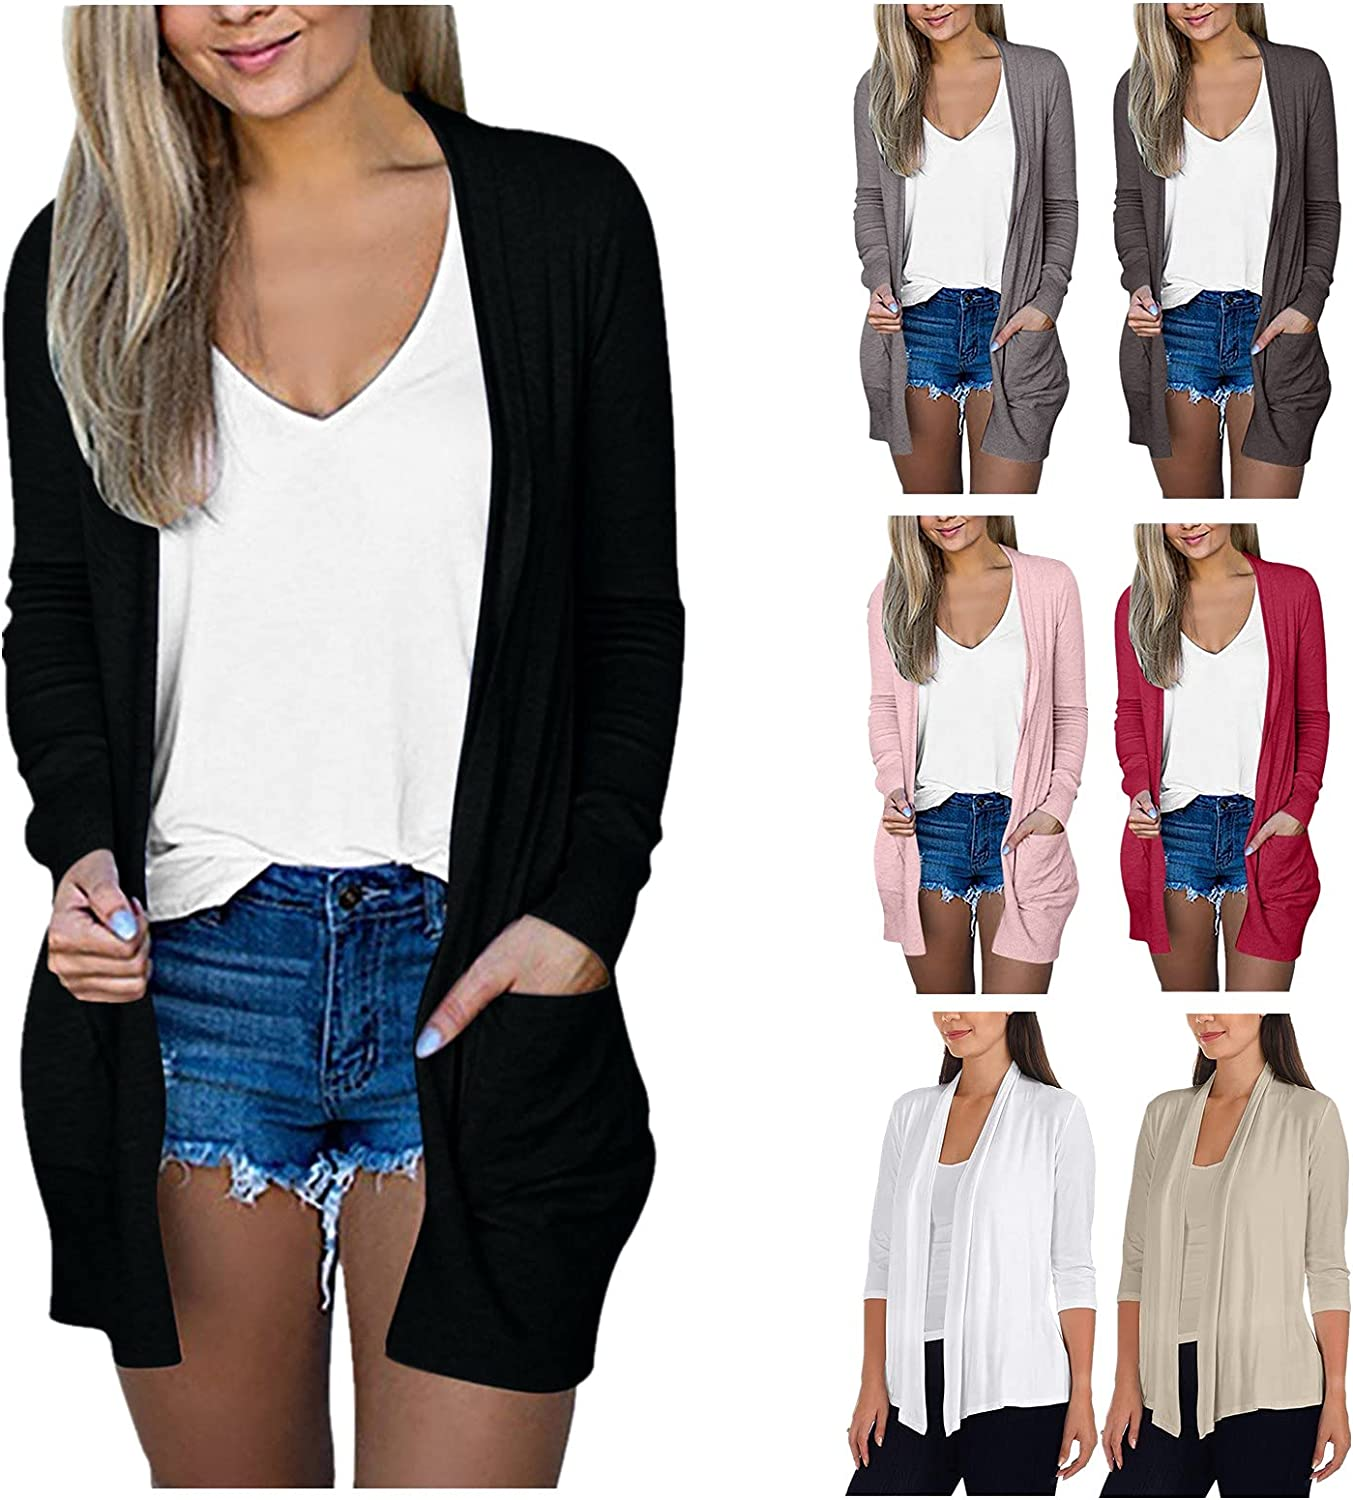 SUIQU Cardigan for Women Solid Color Casual Lightweight Open Drape Long Sleeve Outwear Sweater with Pocket, S-5XL